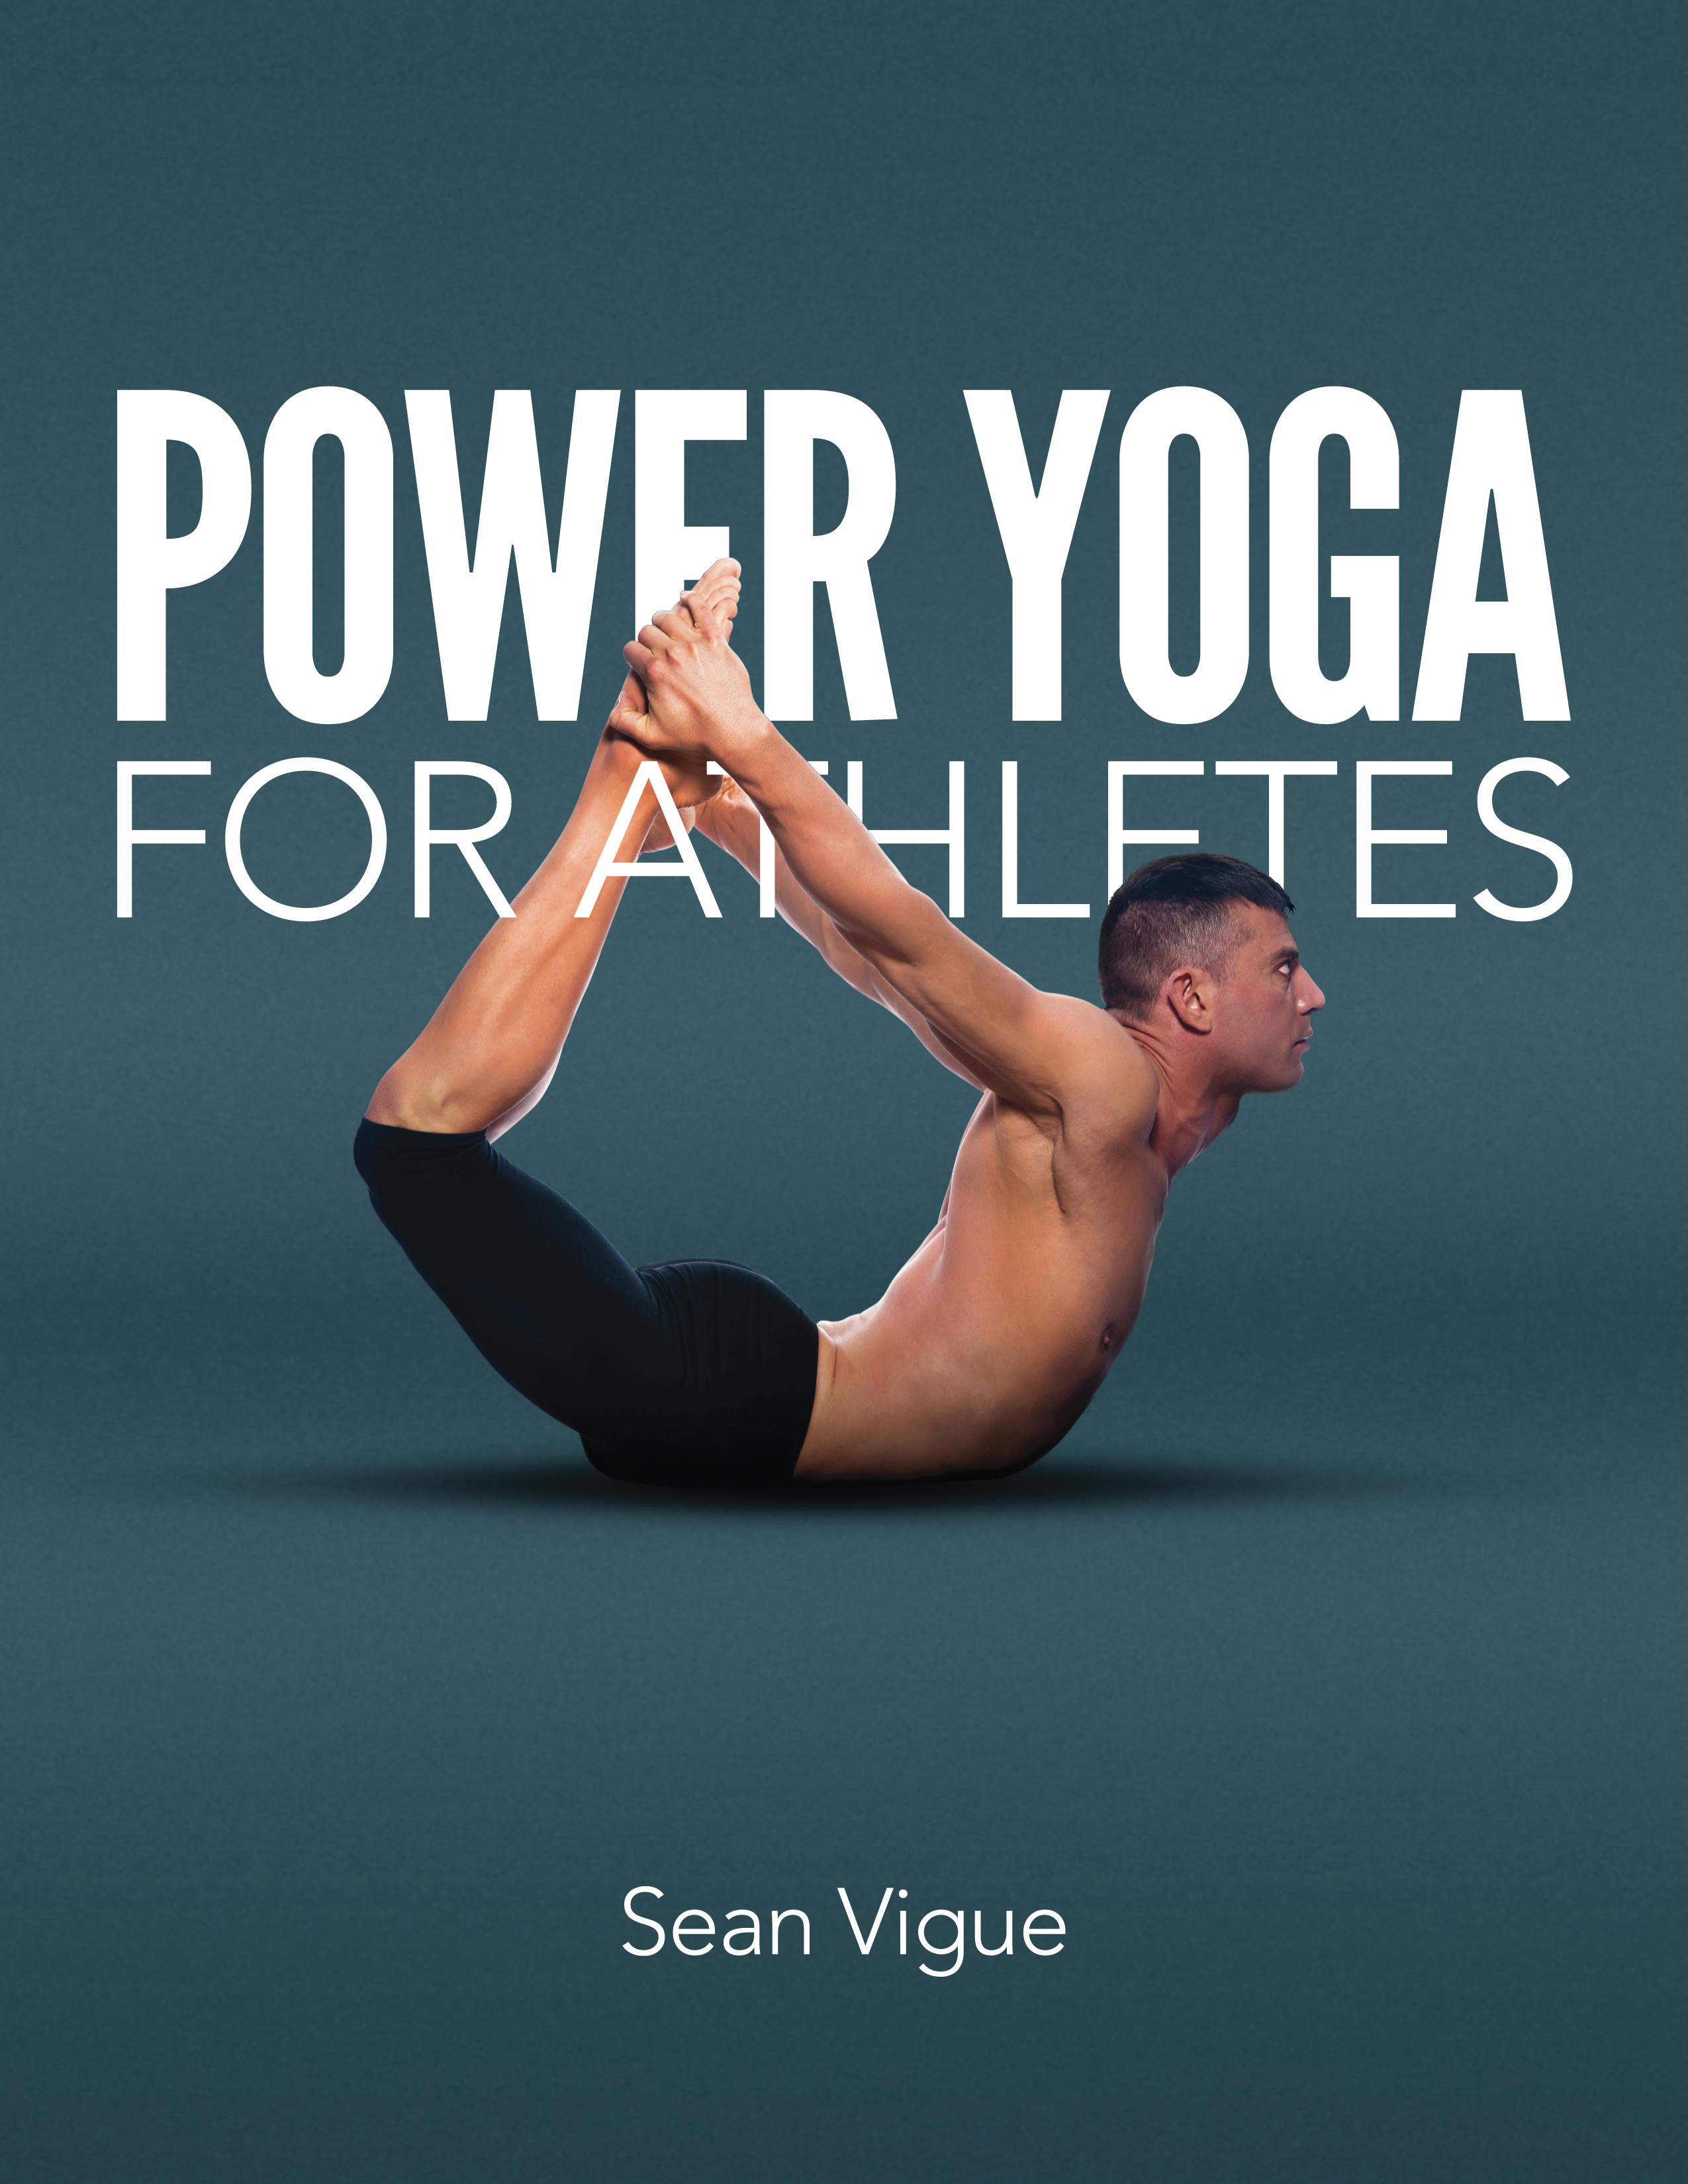 Typographic Book Cover Yoga : Power yoga for athletes sean vigue